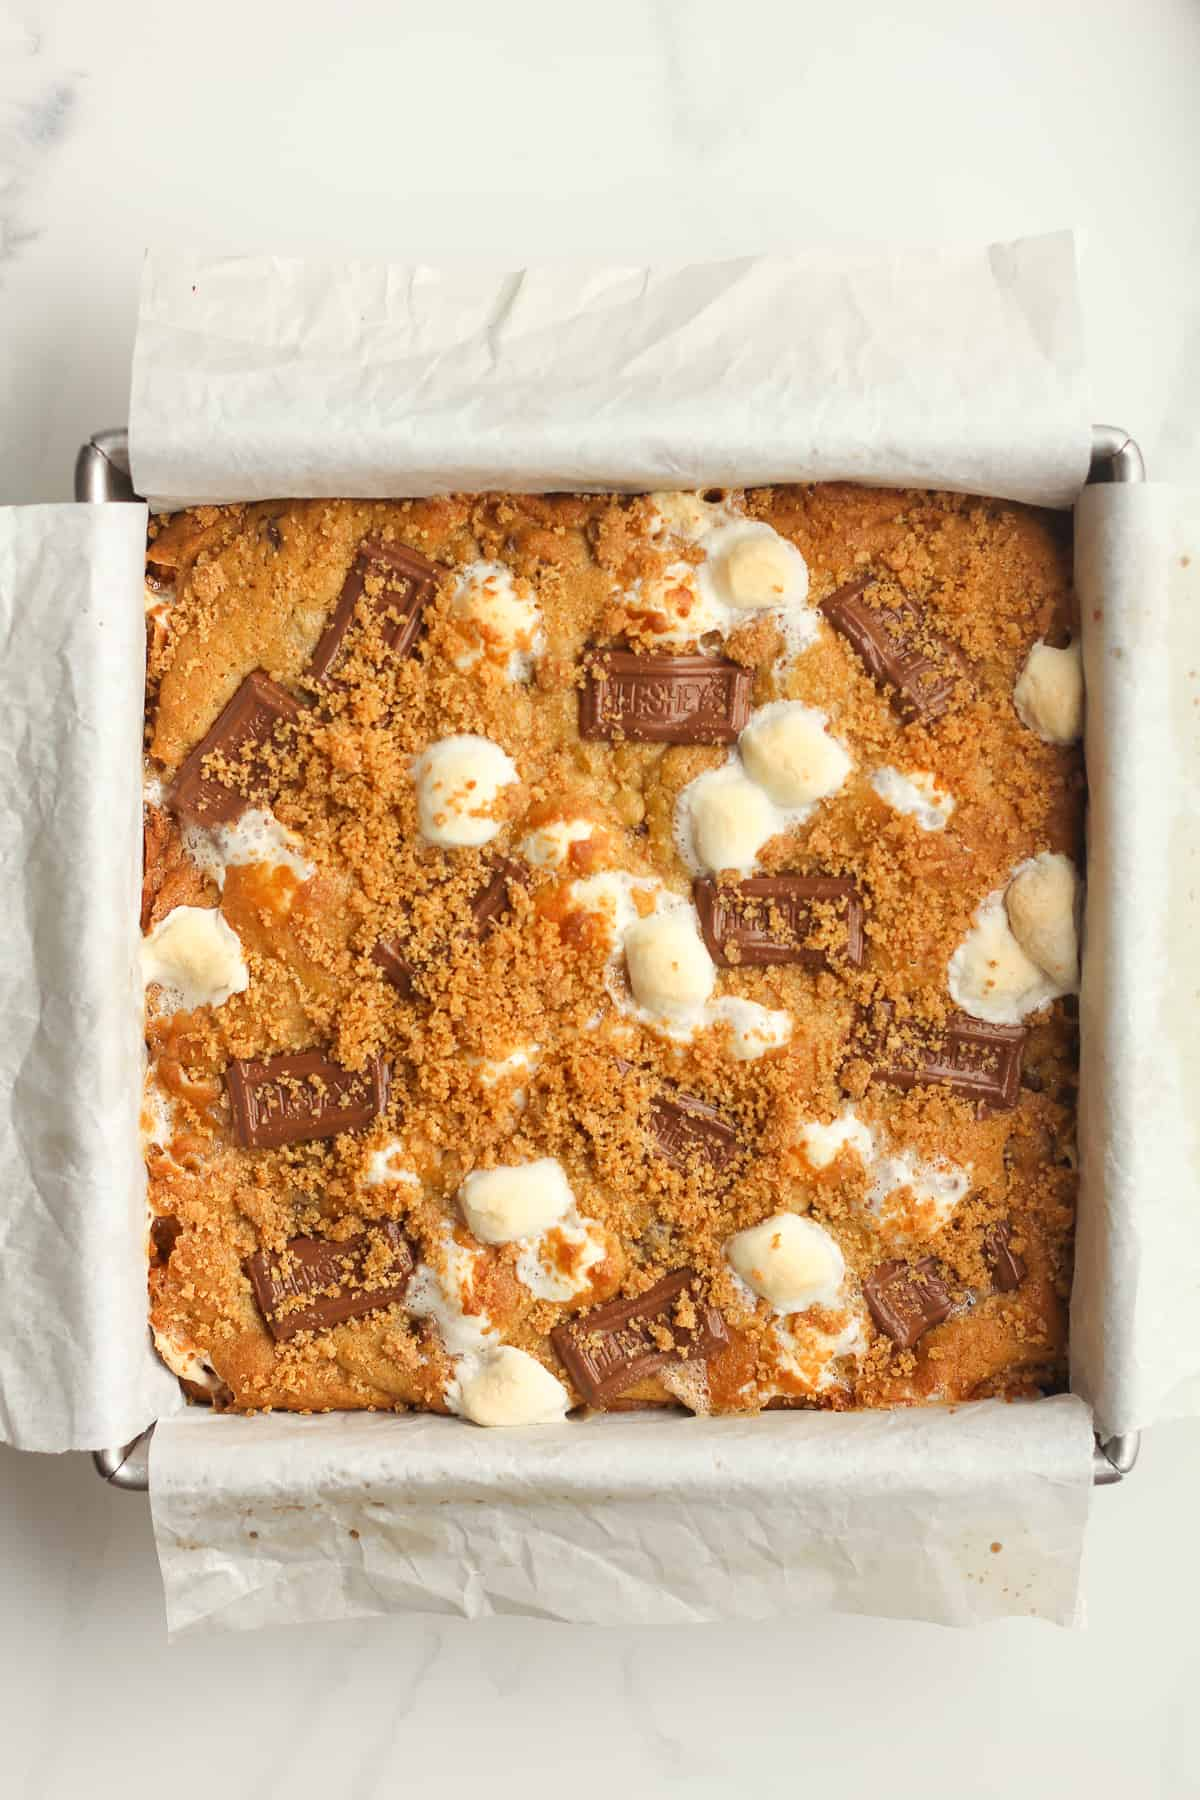 A pan of baked s'mores bars.